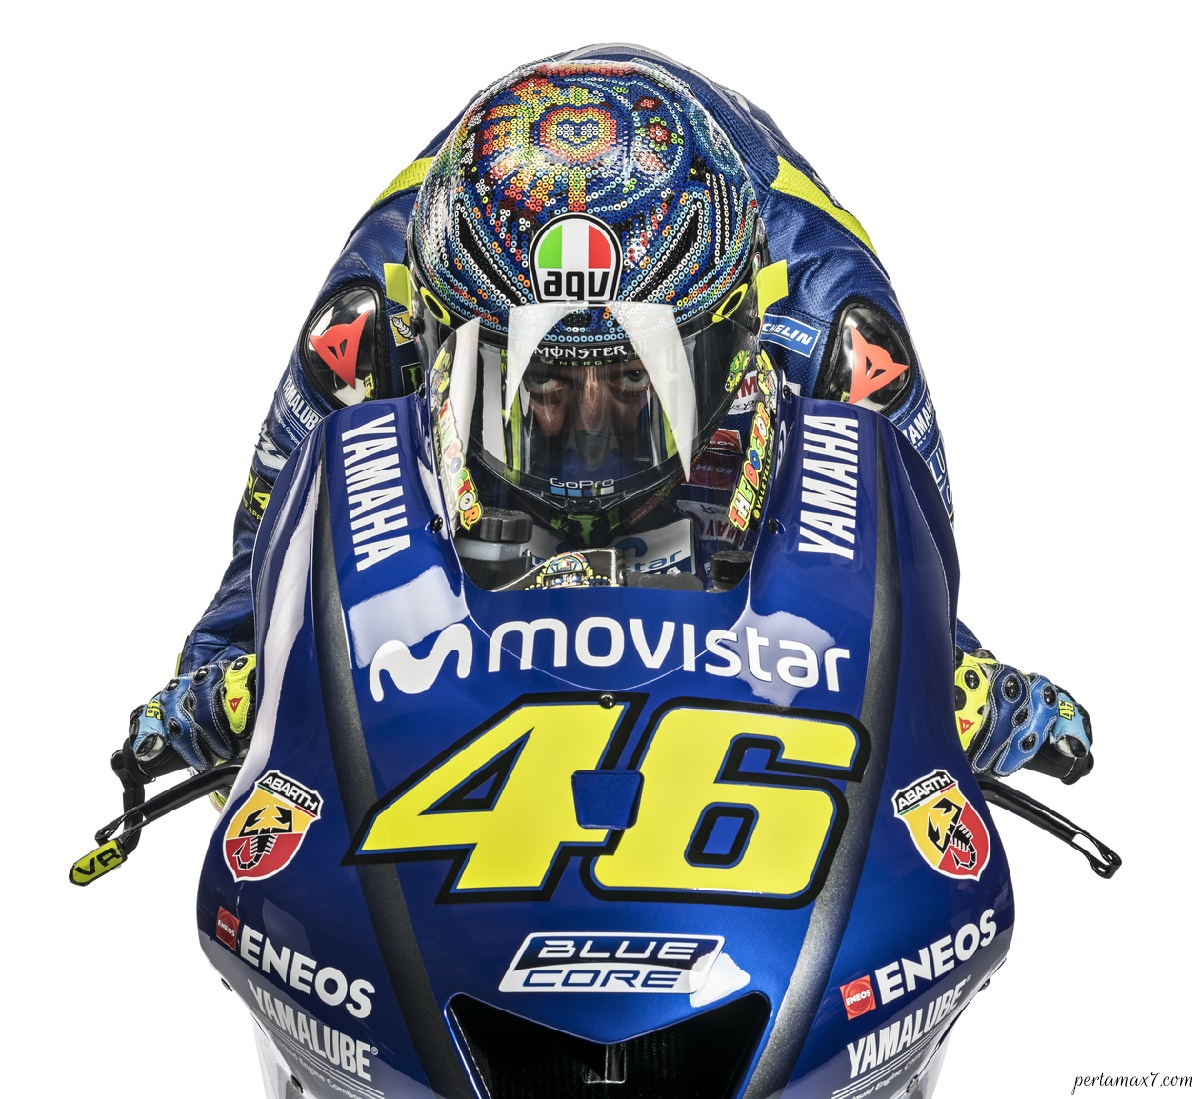 Valentino Rossi Wallpaper Hd Posted By John Peltier